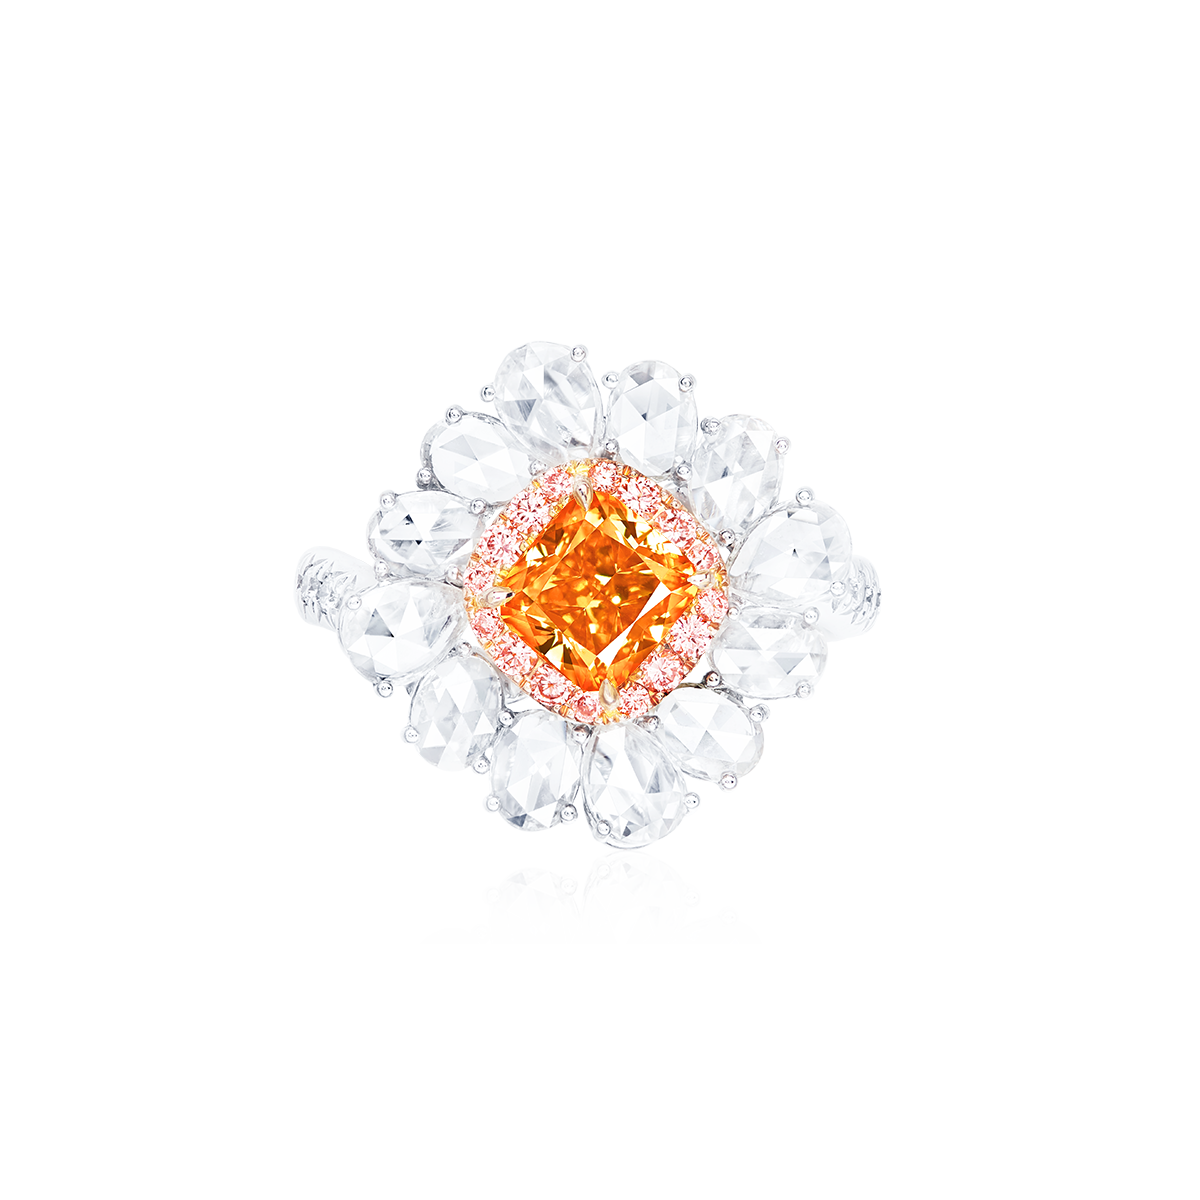 GIA 艷彩黃橘鑽鑽戒 1.13克拉